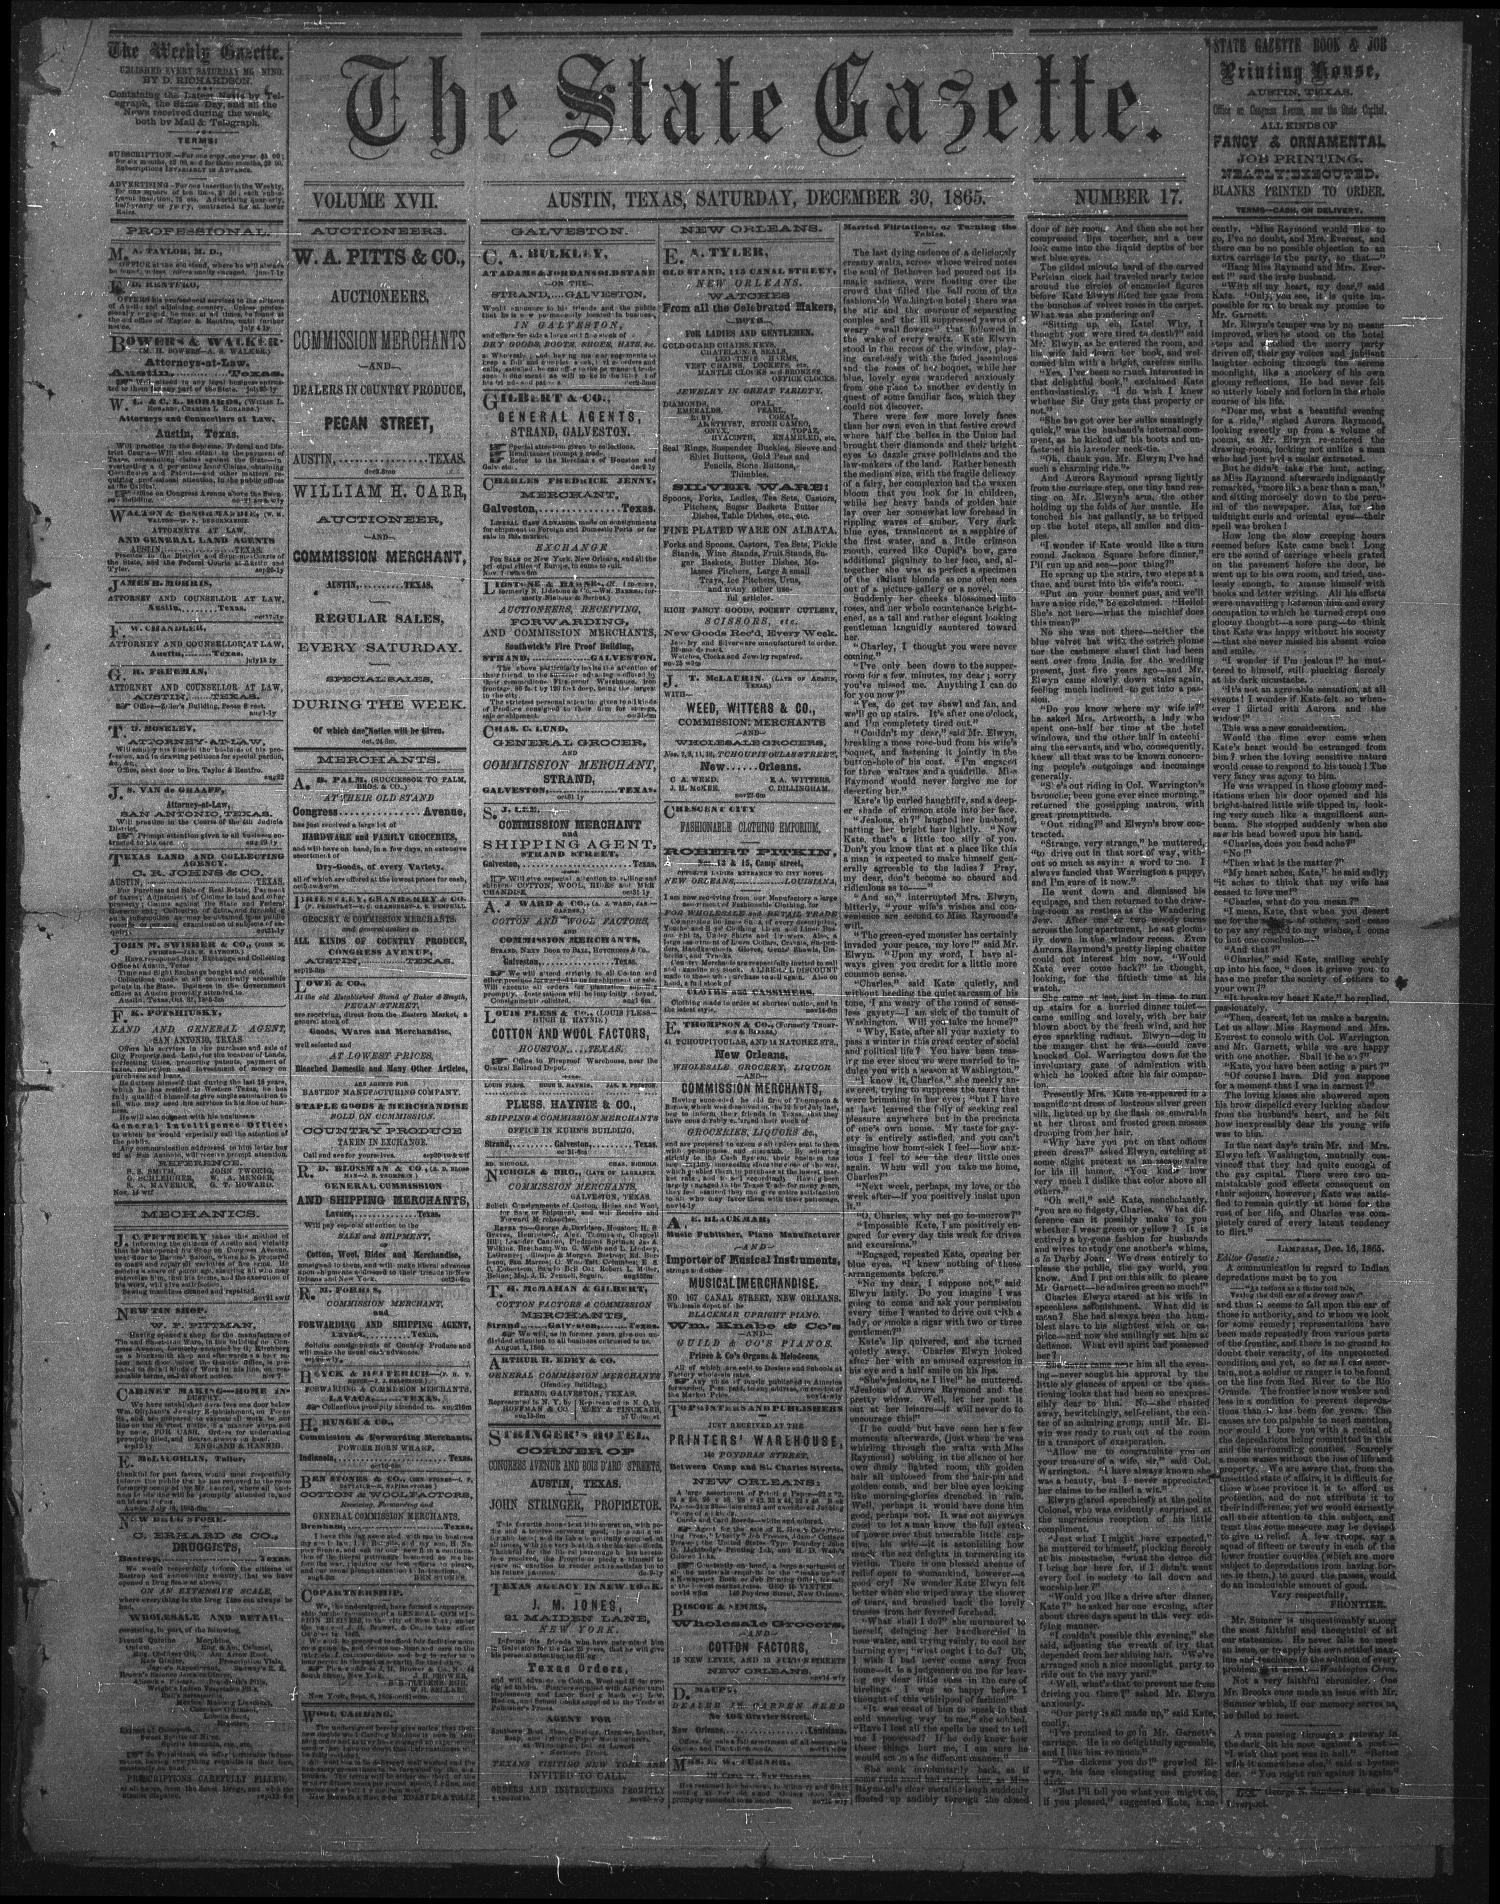 The State Gazette. (Austin, Tex.), Vol. 17, No. 17, Ed. 1 Saturday, December 30, 1865                                                                                                      [Sequence #]: 1 of 3